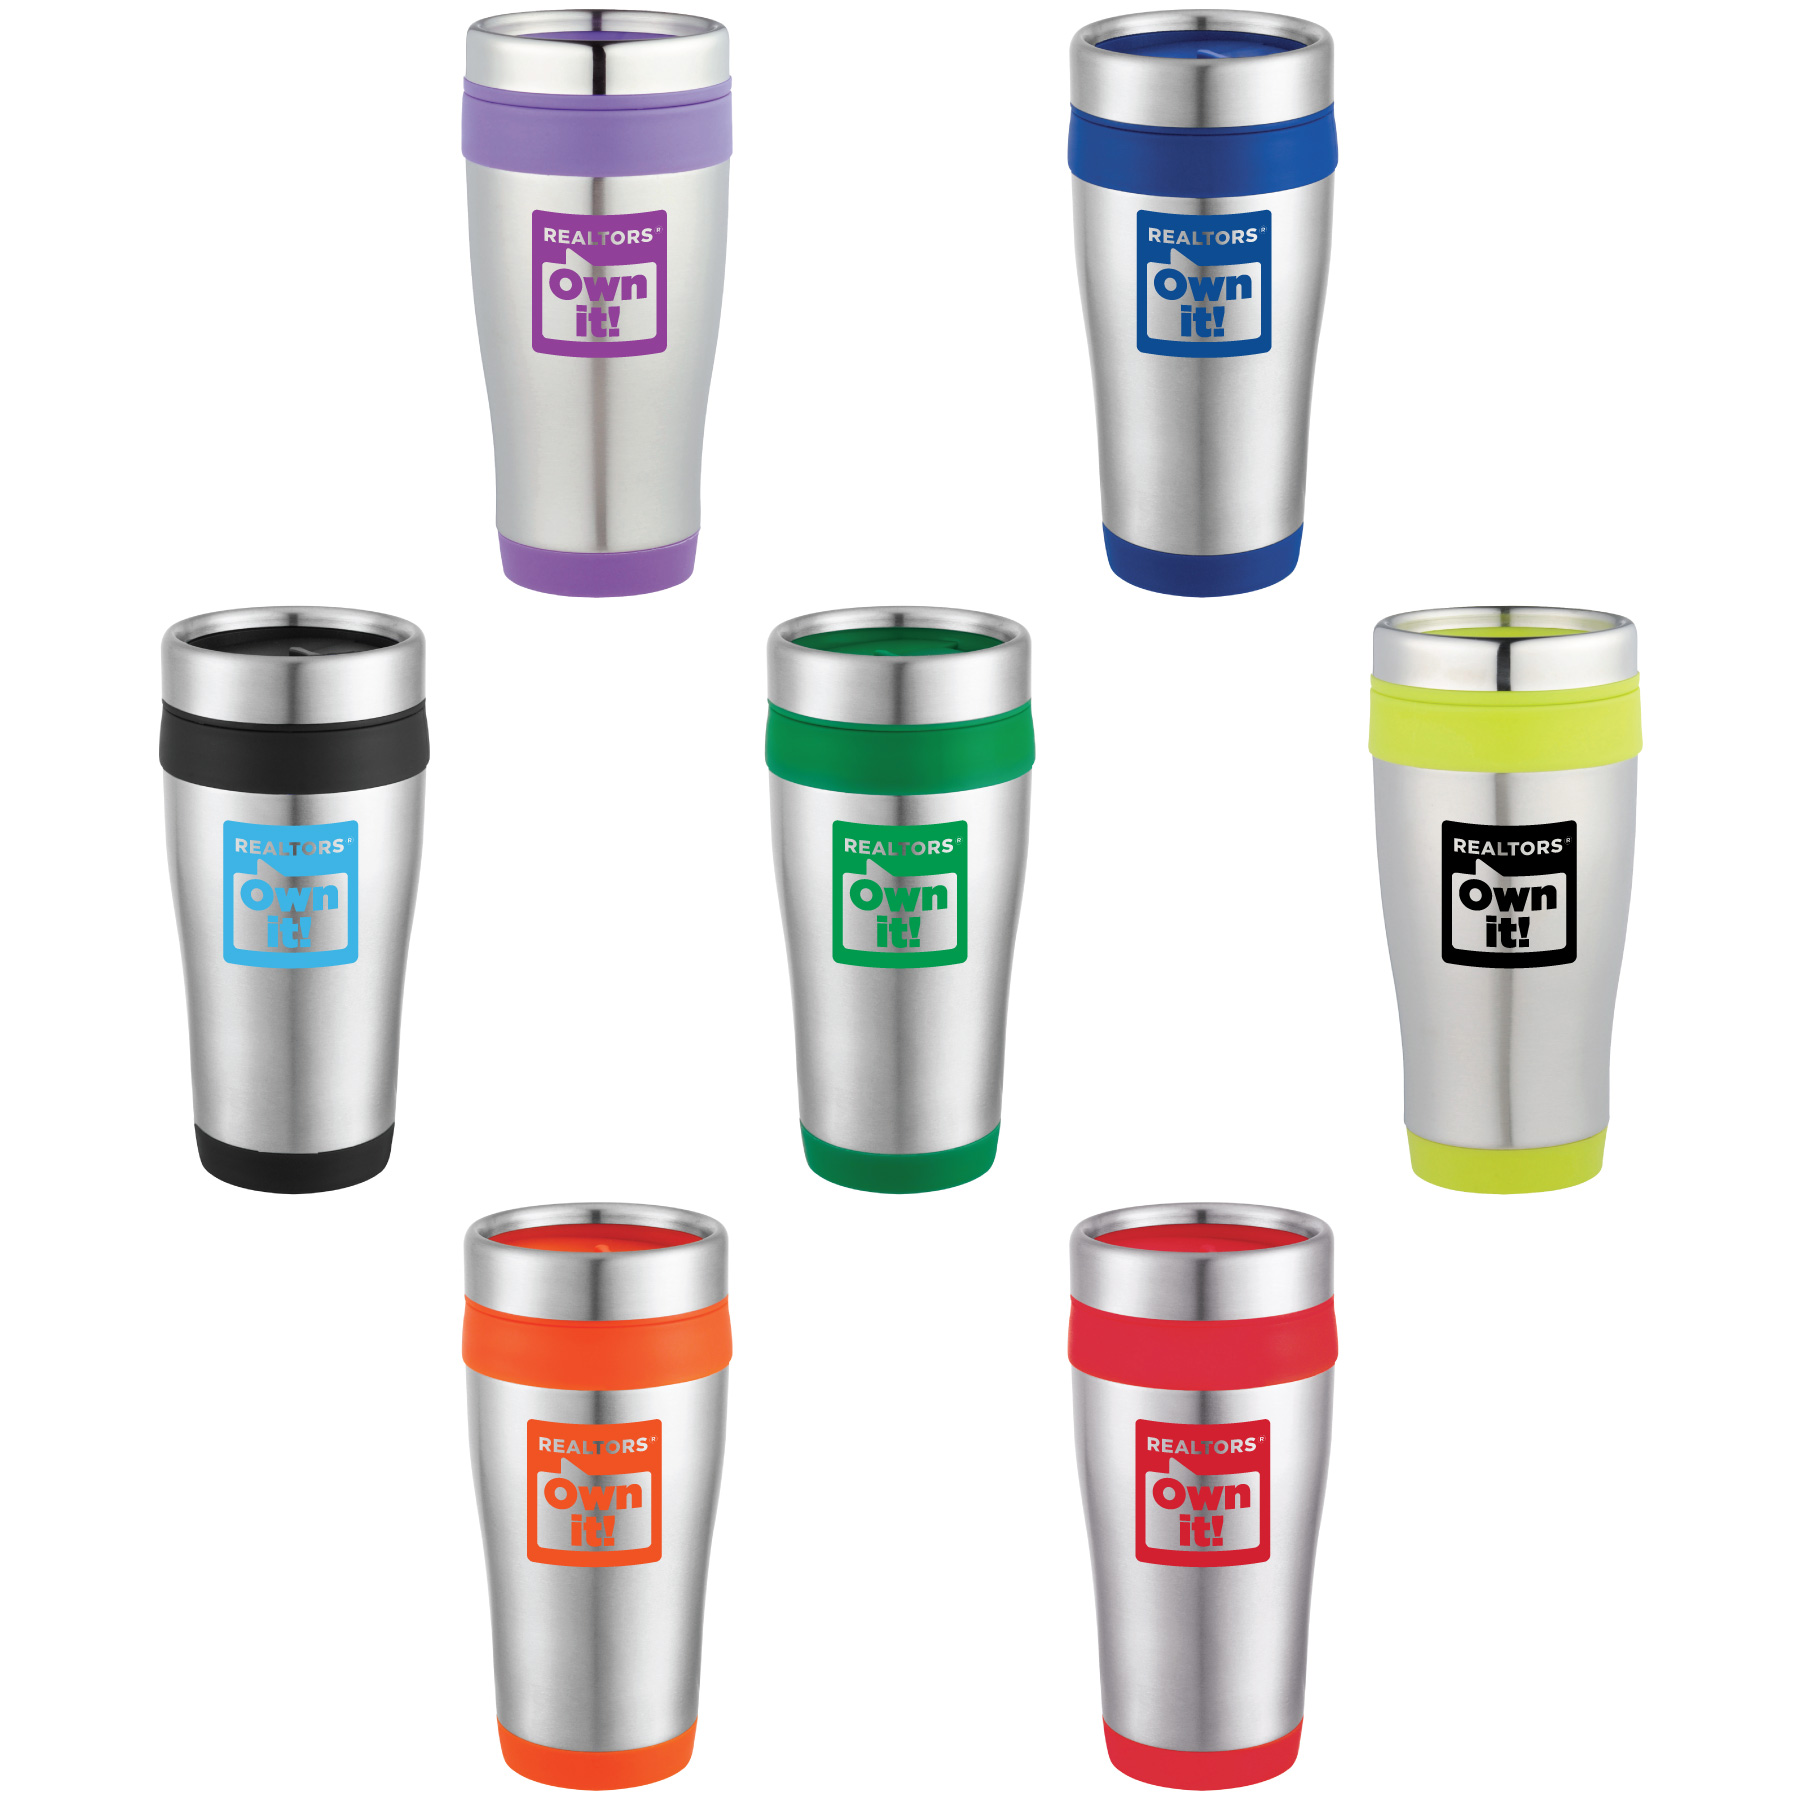 Simpson REALTORS® Own It! Travel Tumbler (Special Order) Cups,Mugs,Tumblers,Drinks,Drinkwares,glasses,glass,coffees,thermal,yetis